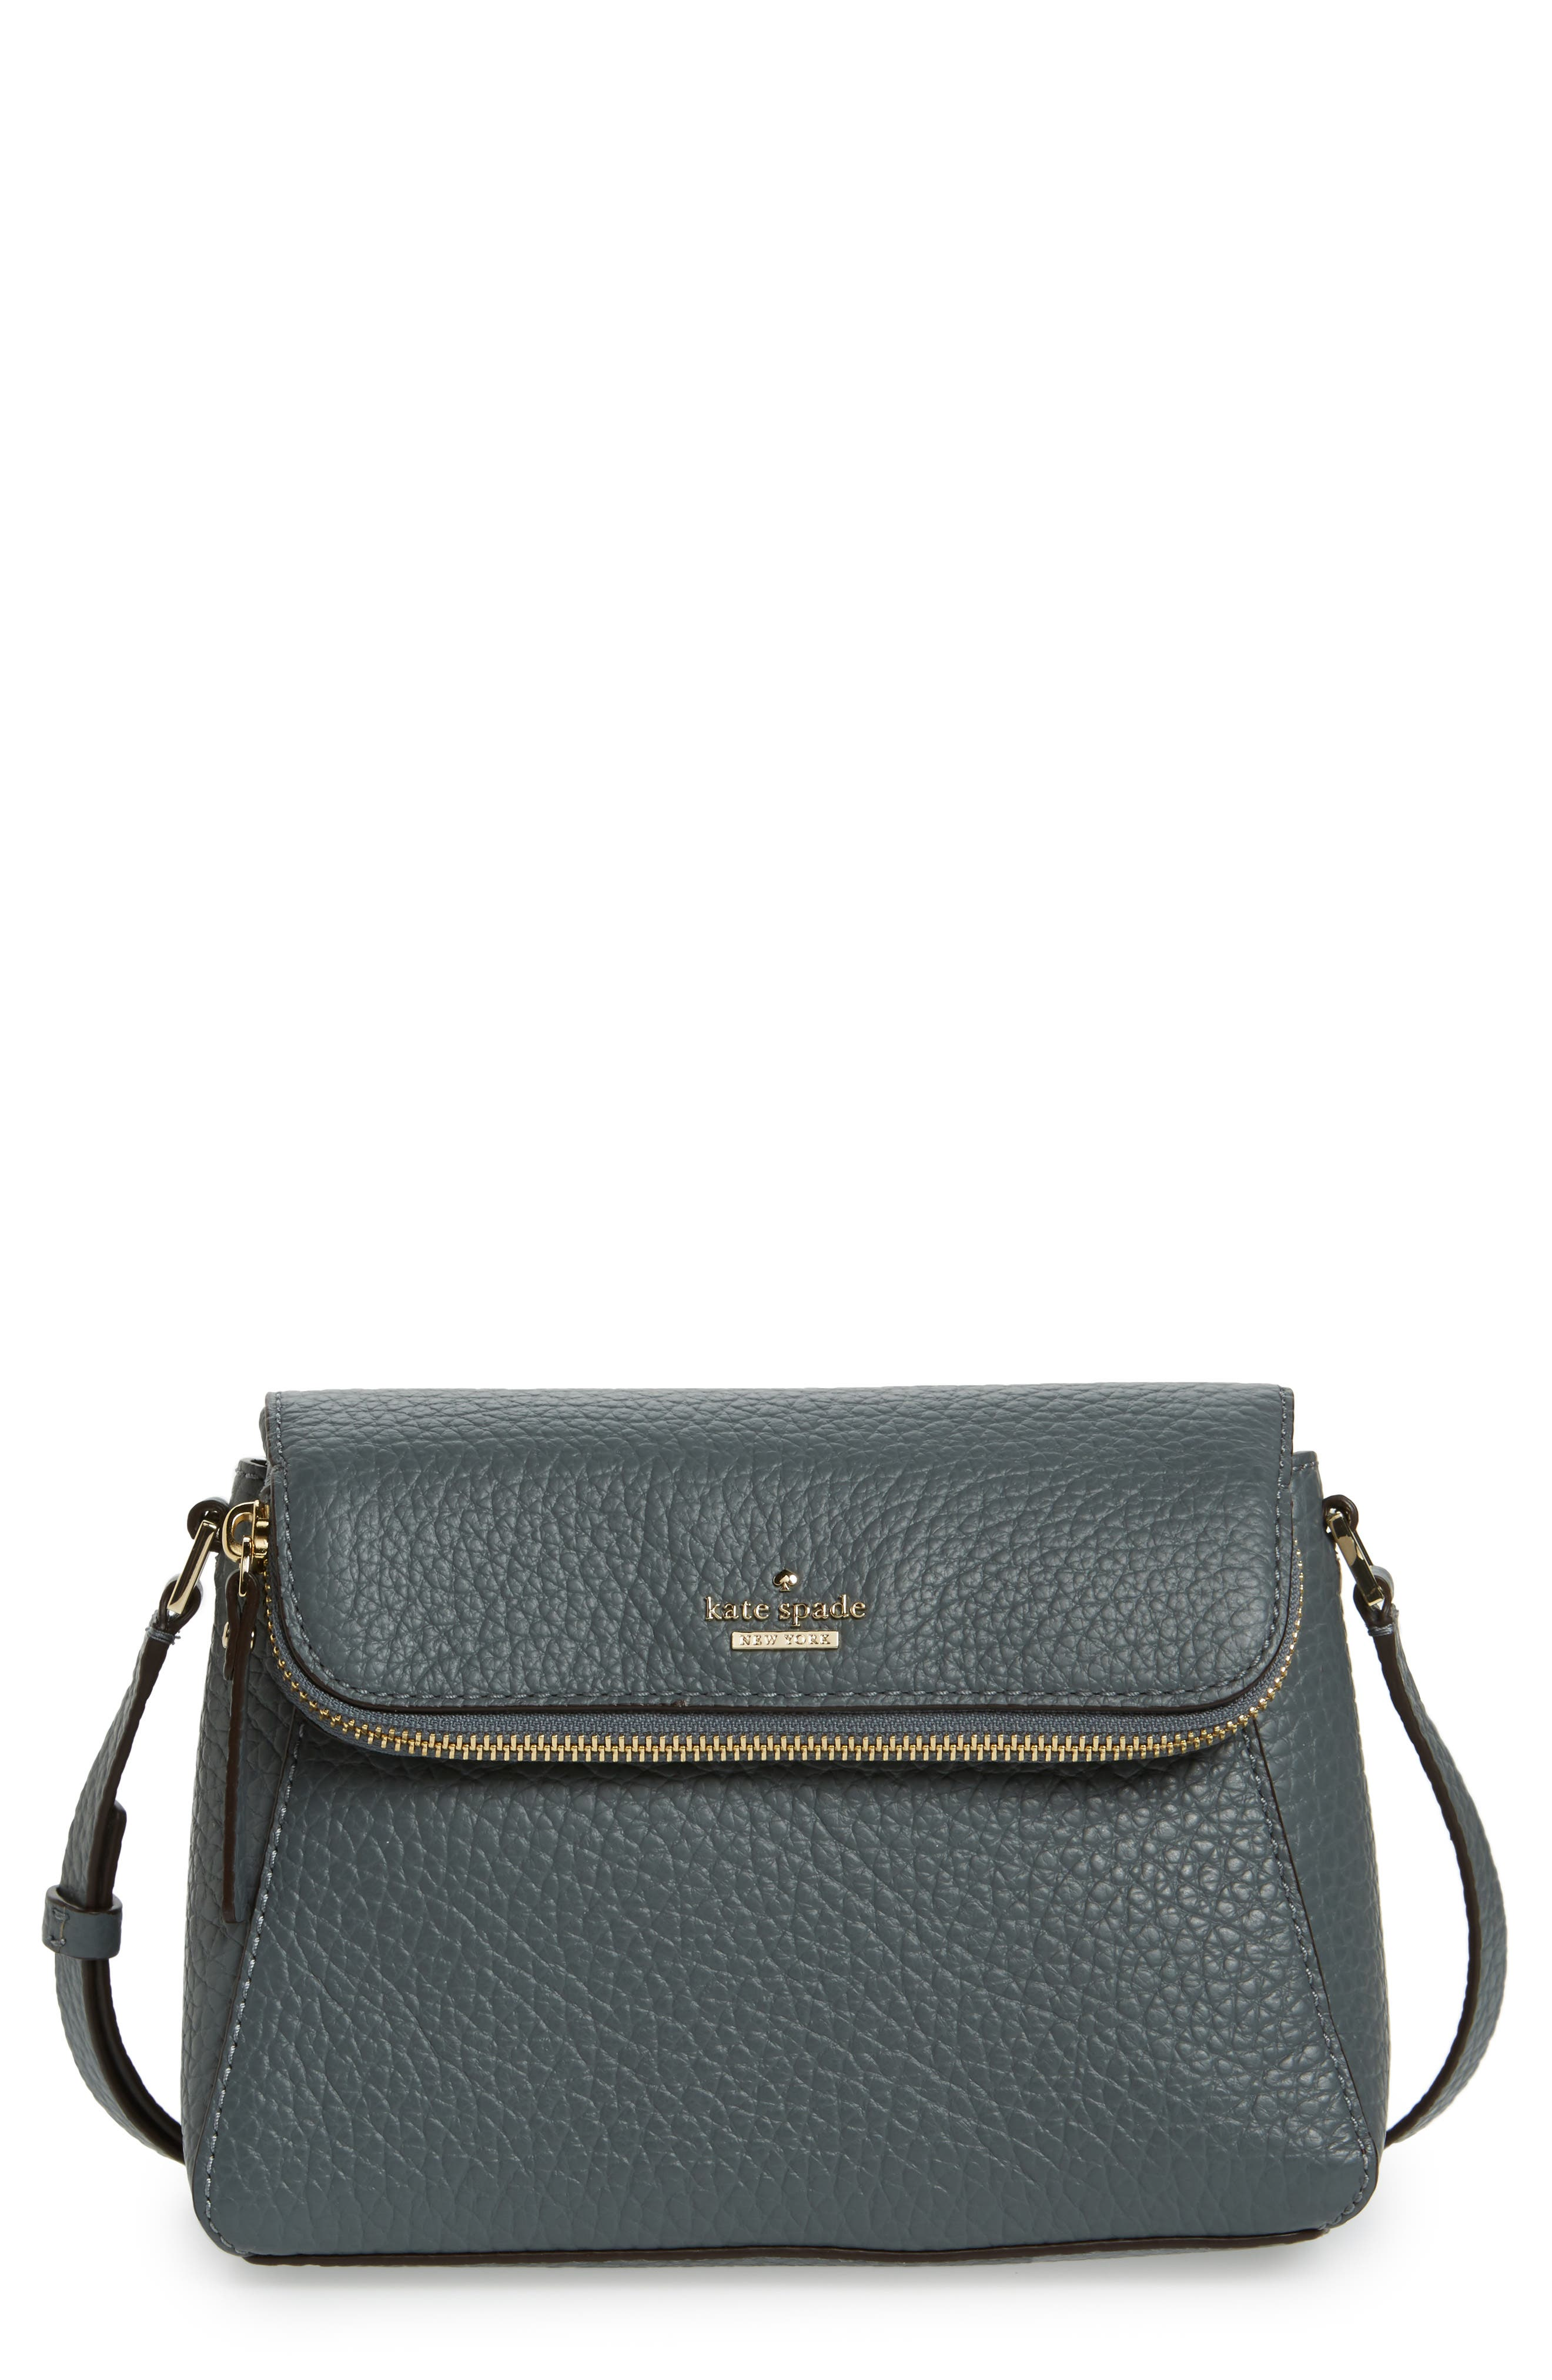 kate spade new york carter street - berrin leather crossbody bag